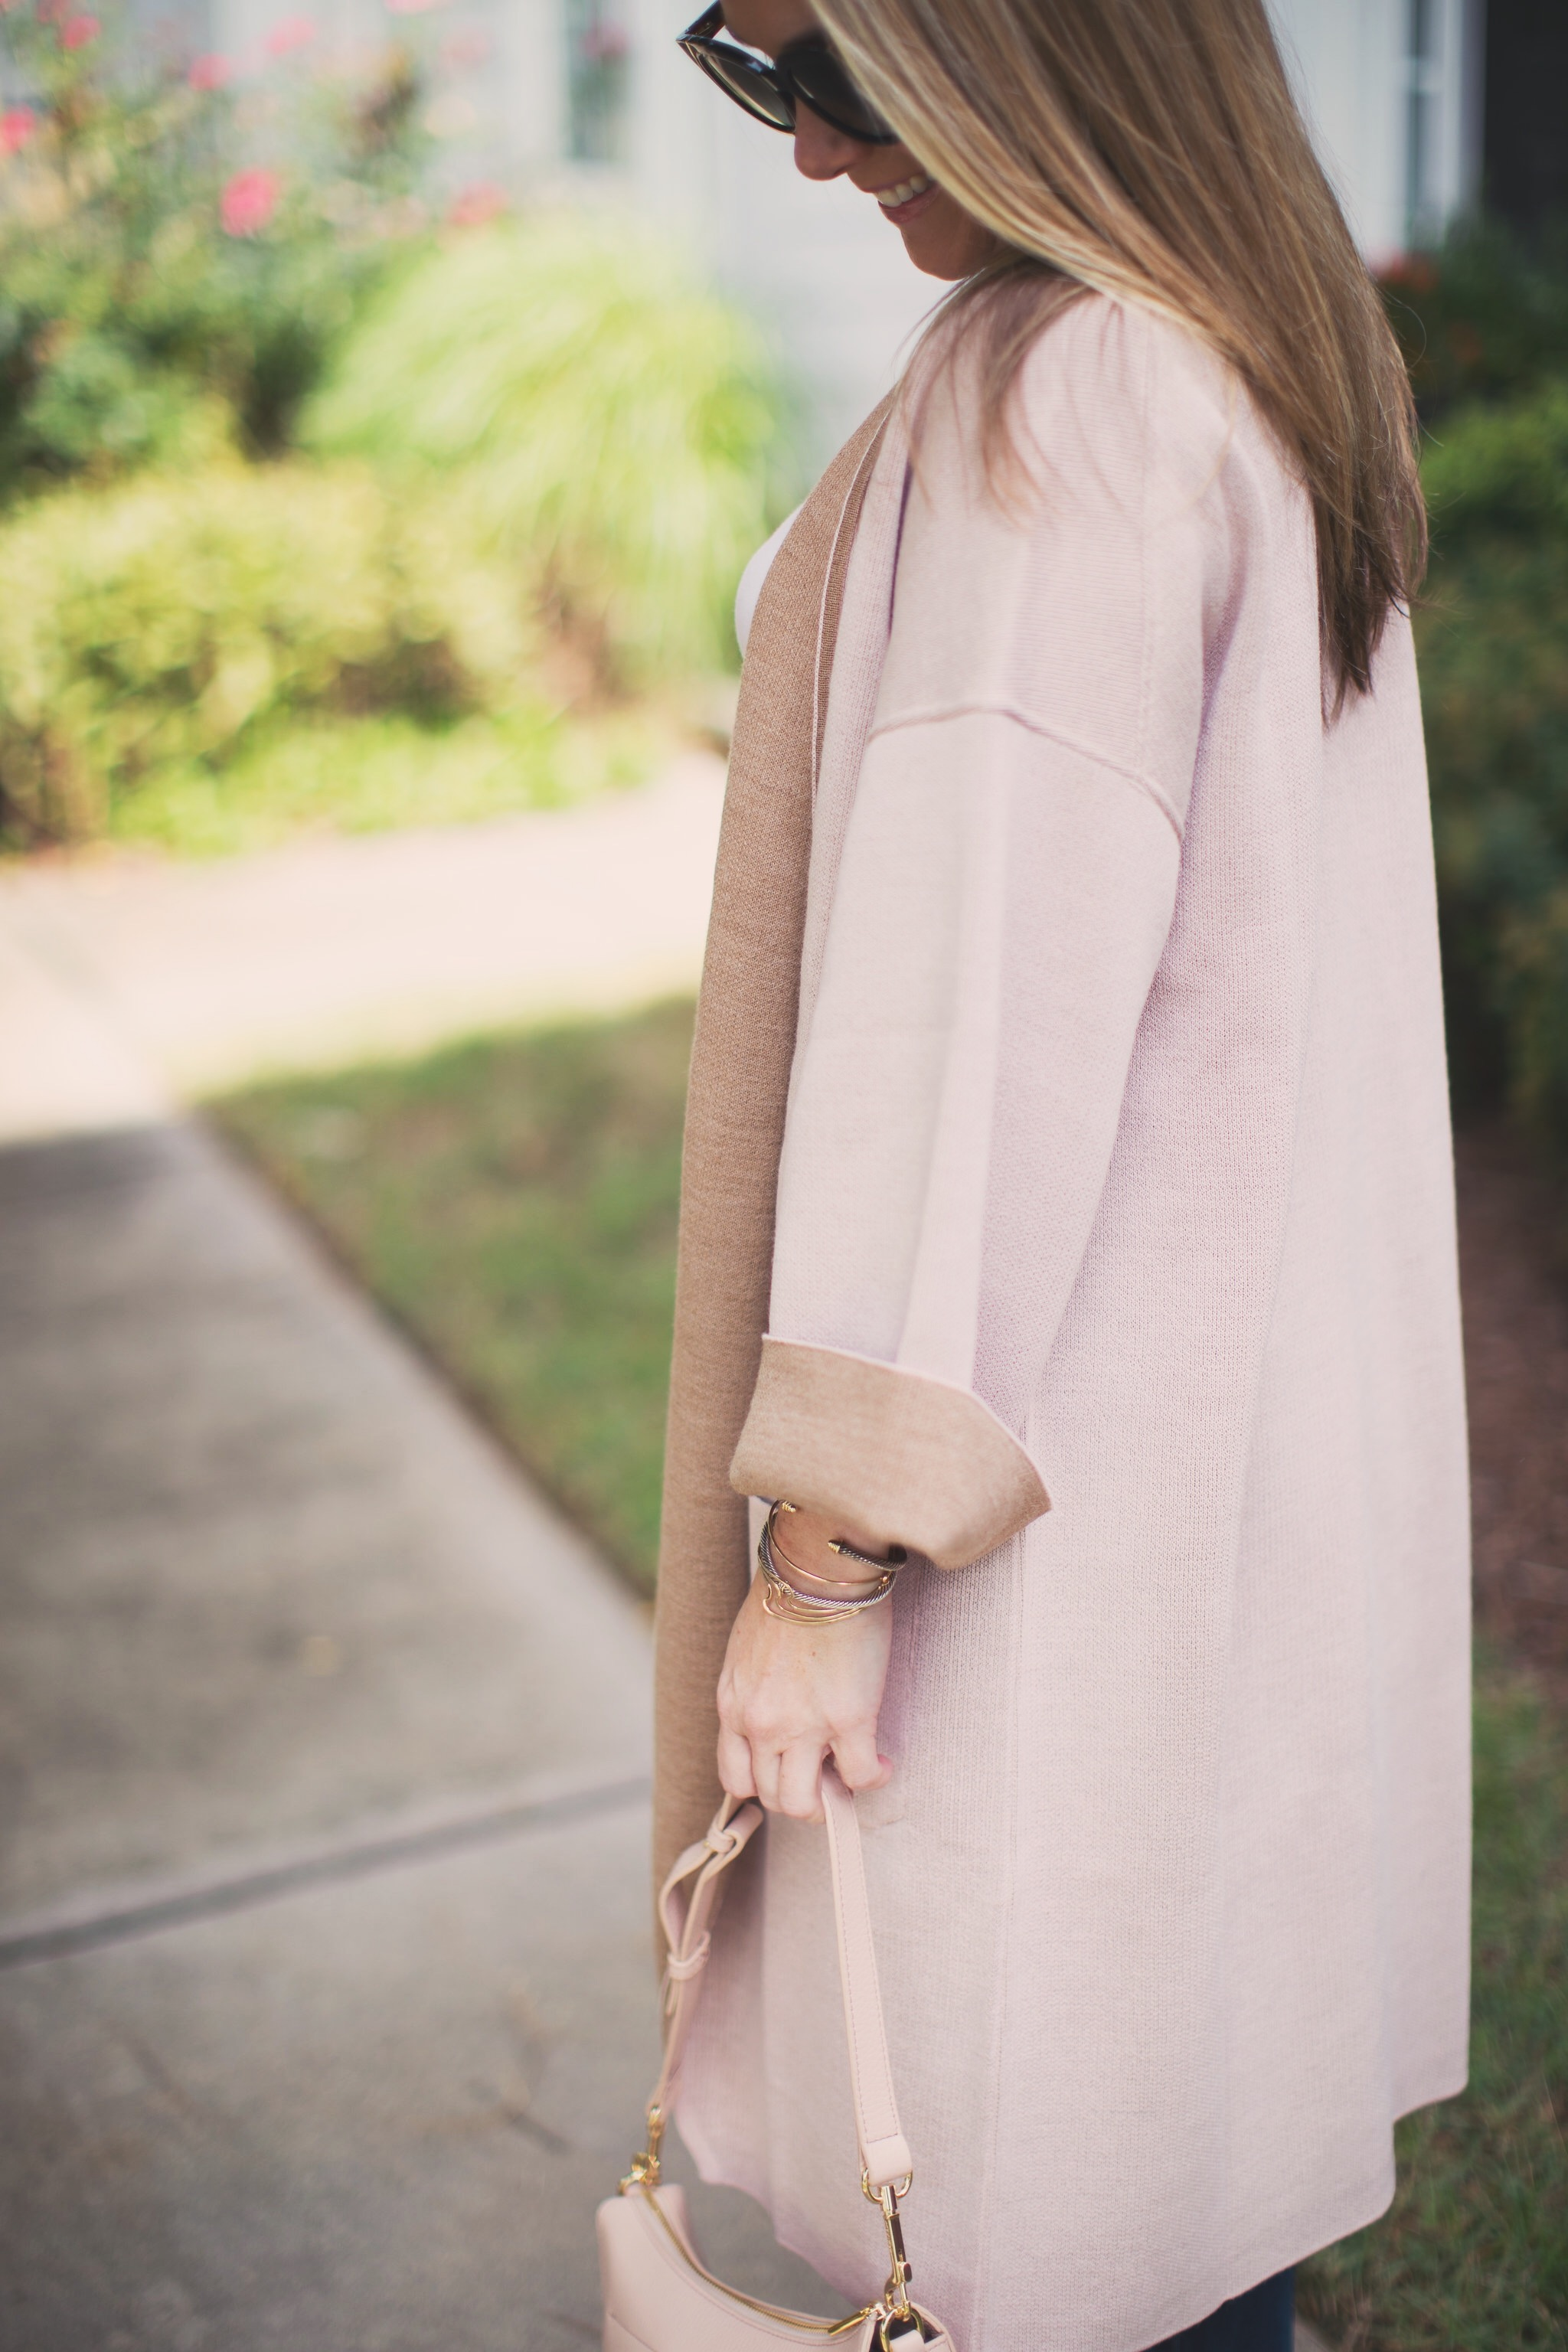 The perfect Cuyana hobo bag for Fall by NC style blogger Every Chic Way